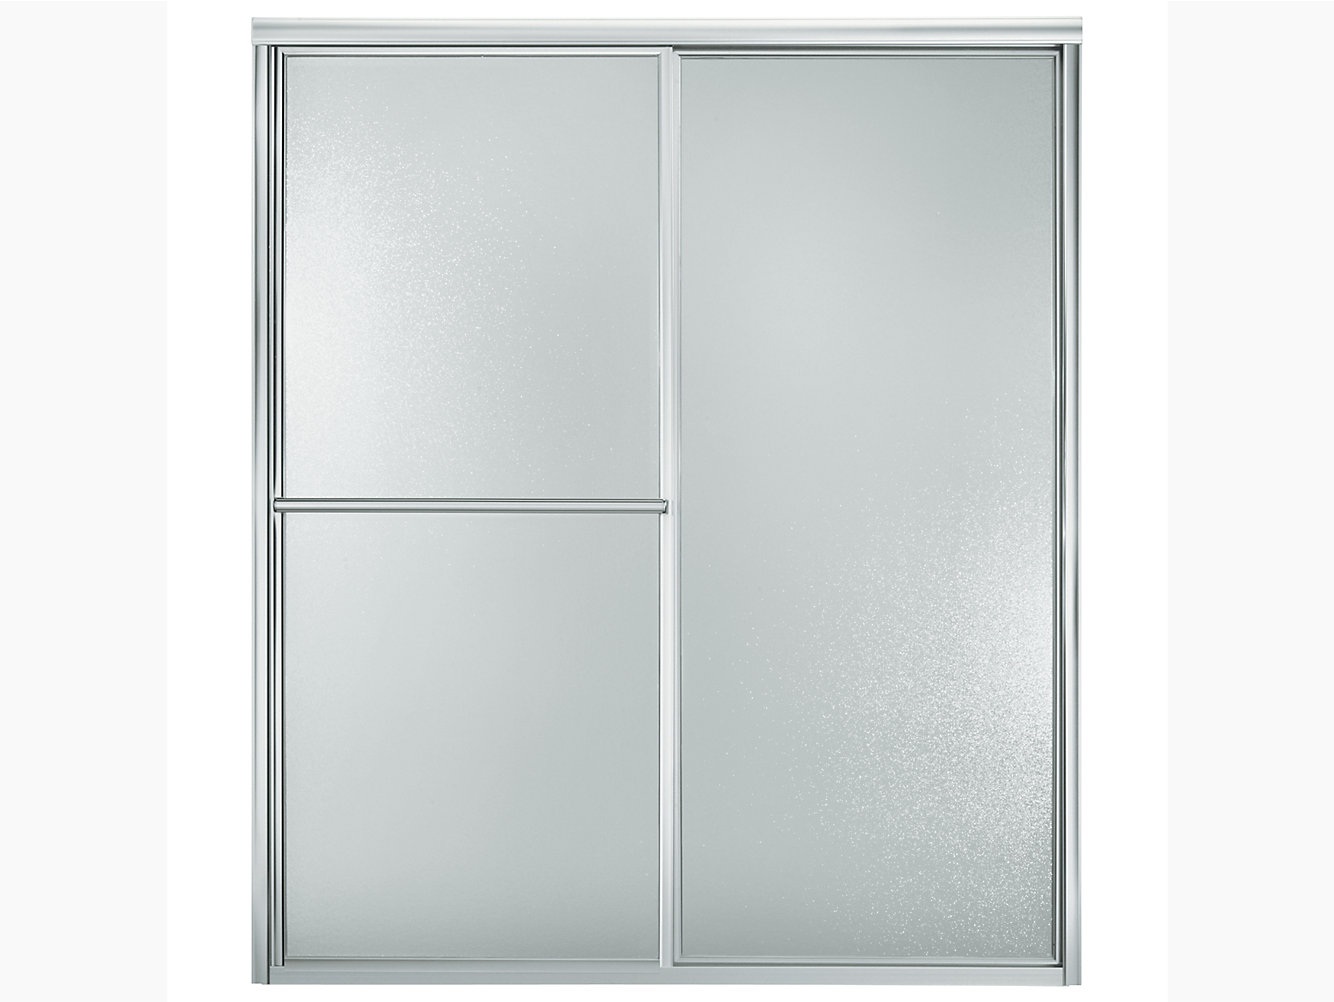 Deluxe Sliding Shower Door Height 70 Max Opening 48 78 5970